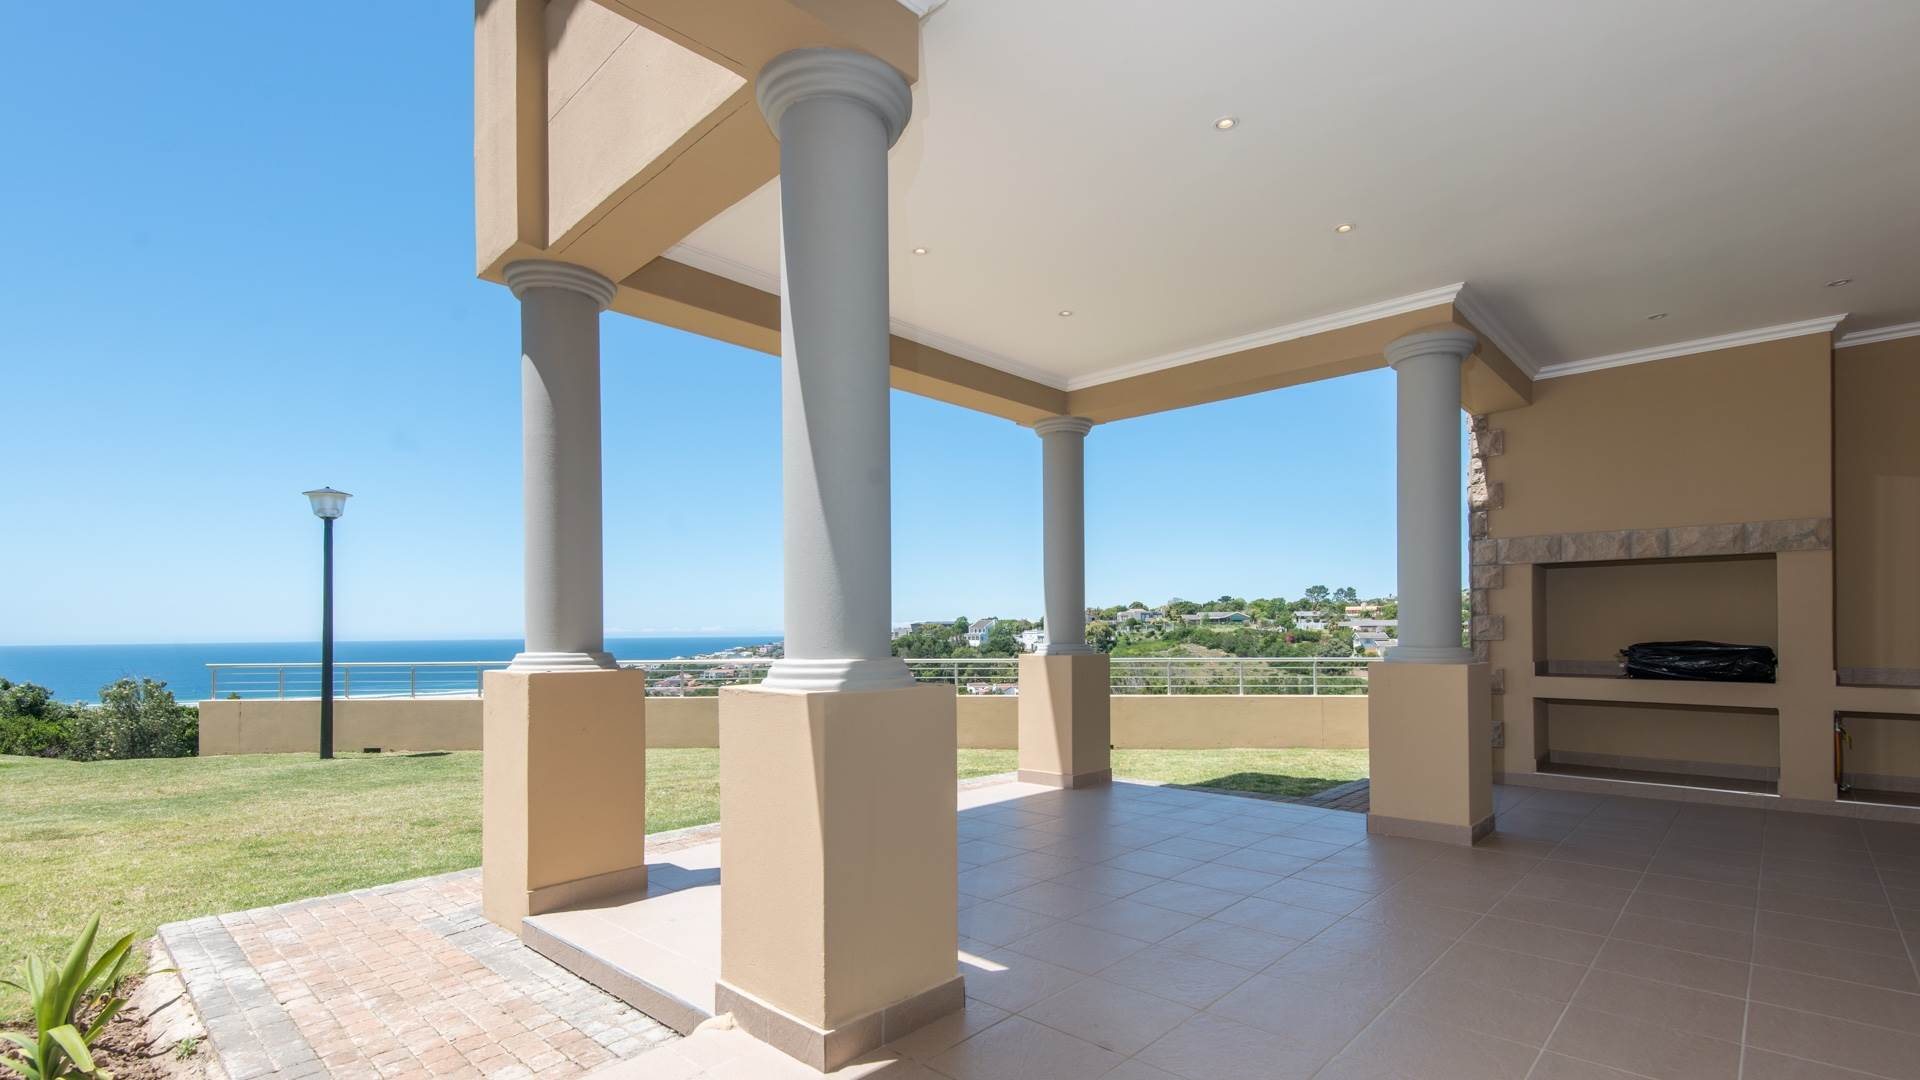 3 BedroomApartment For Sale In Plettenberg Bay